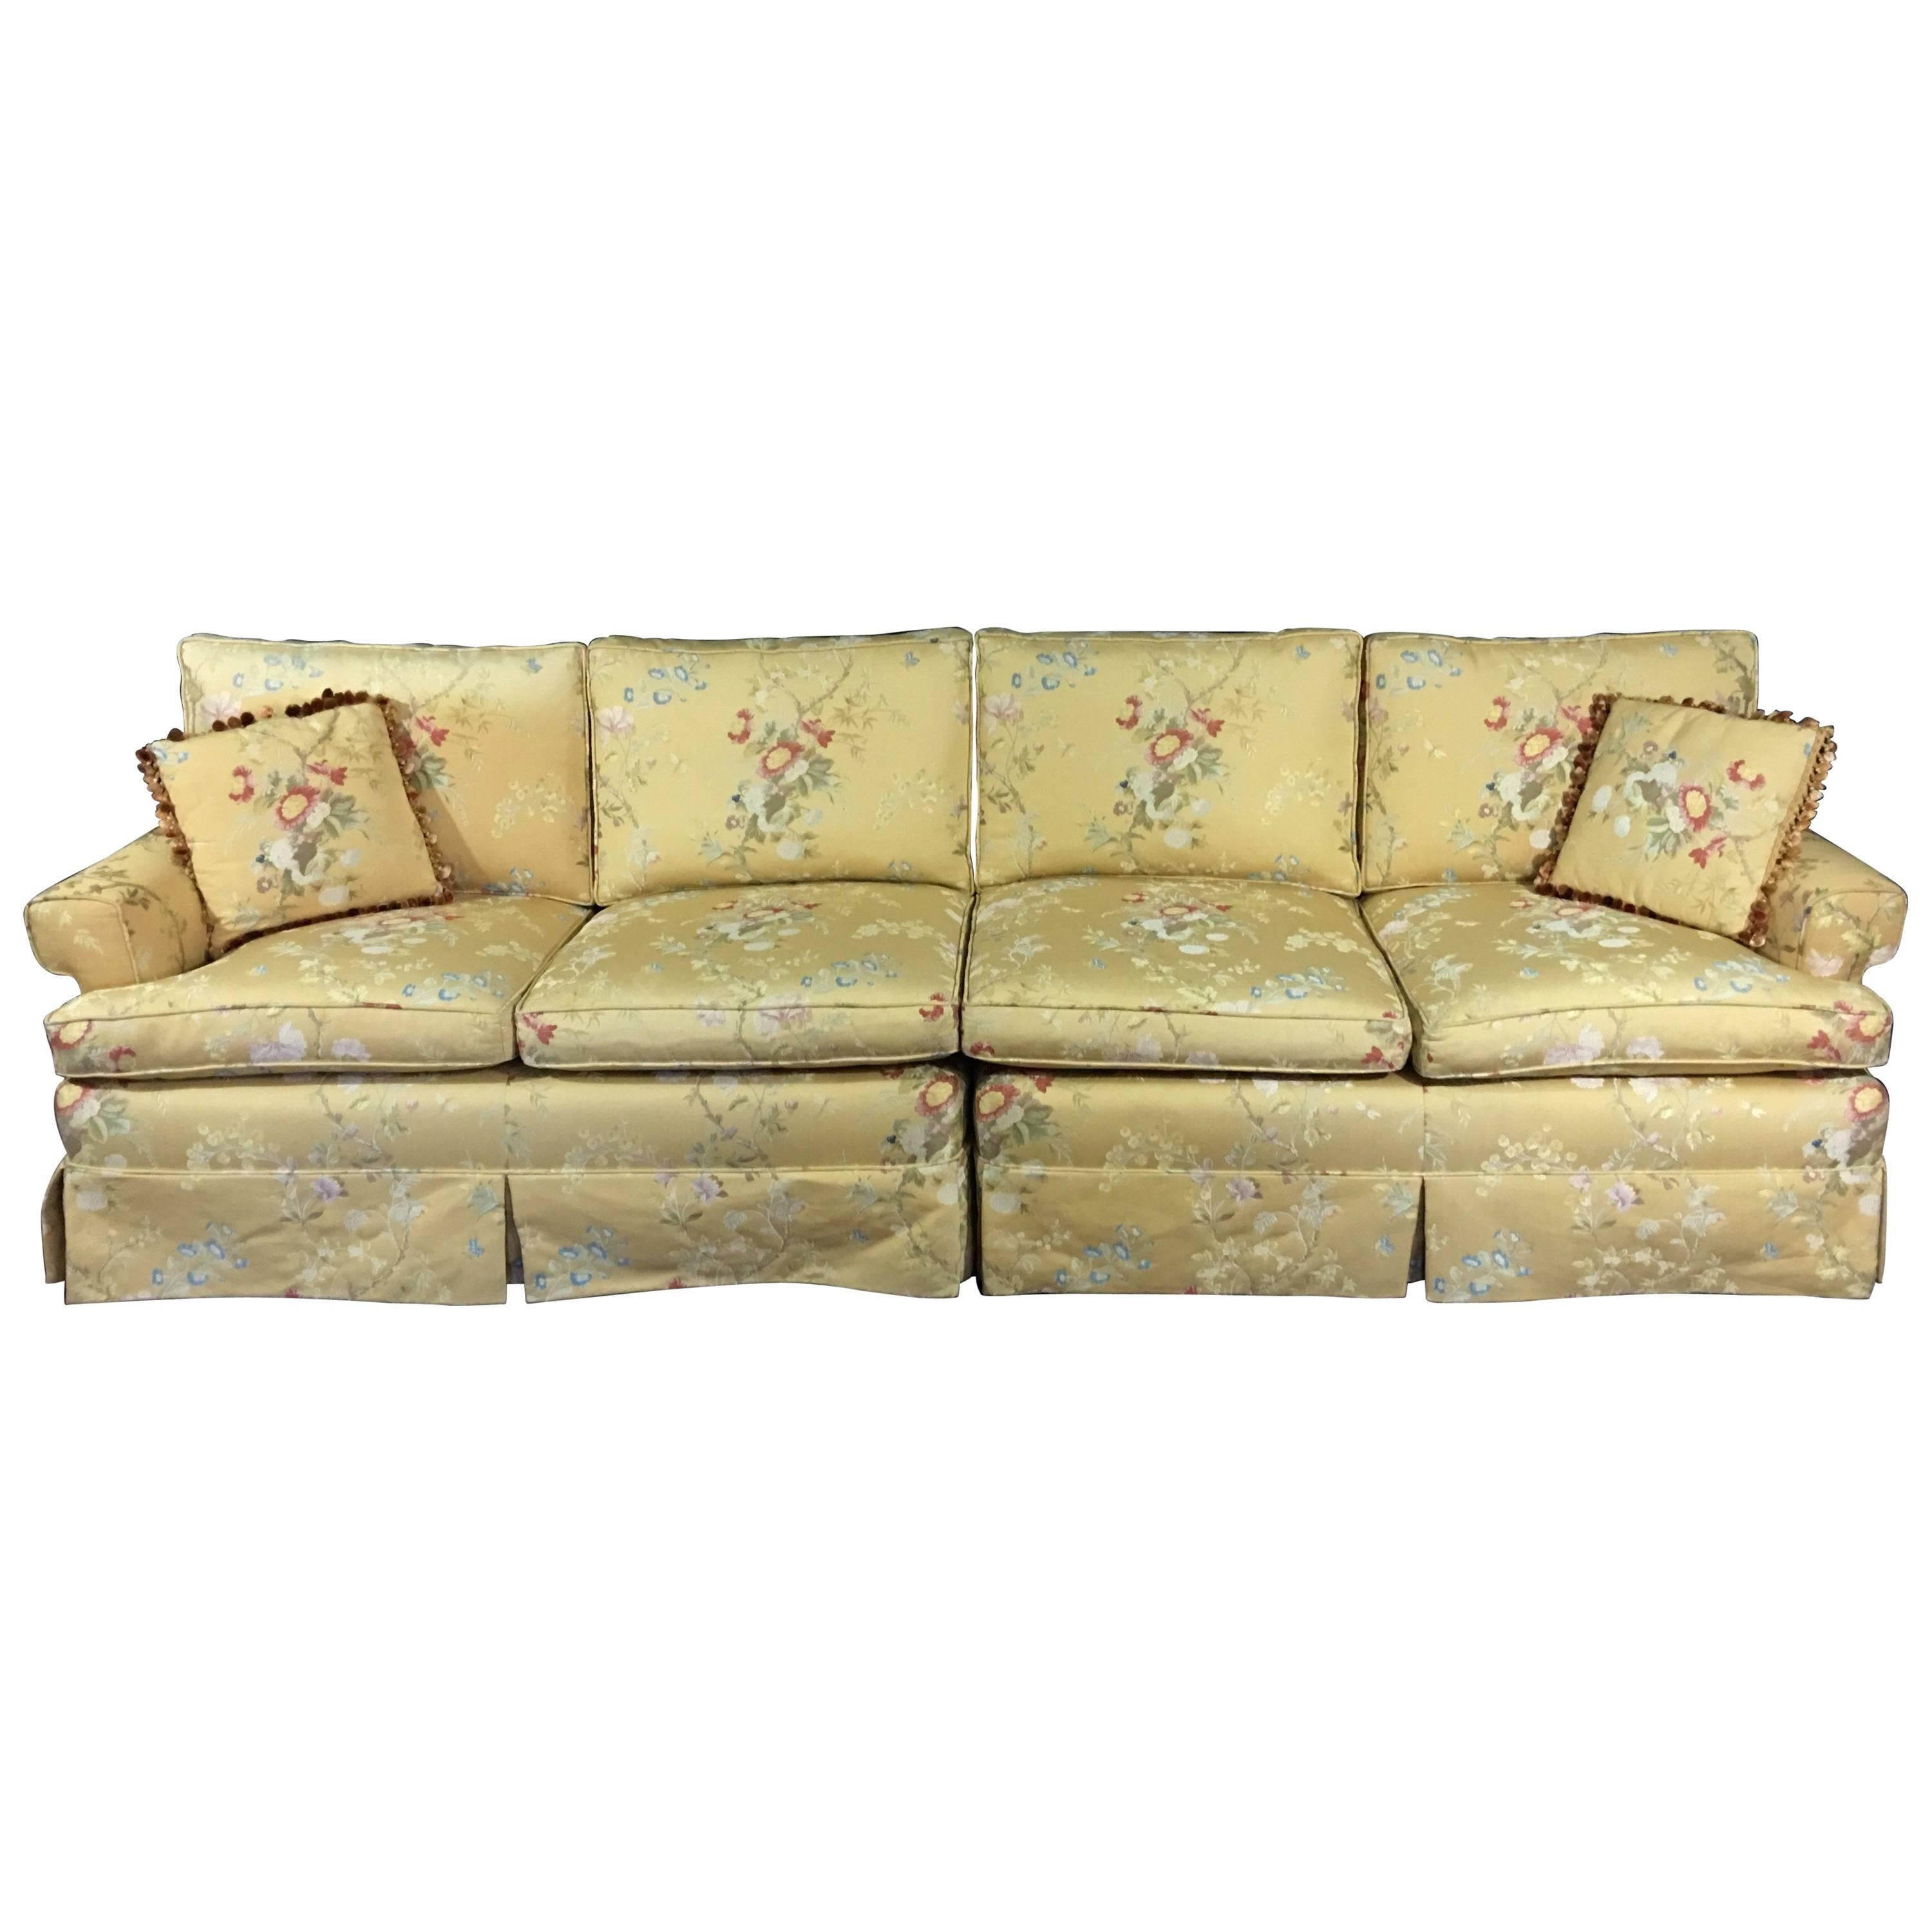 Large Two Piece Sectional Sofa In Pale Yellow Brocade For Sale